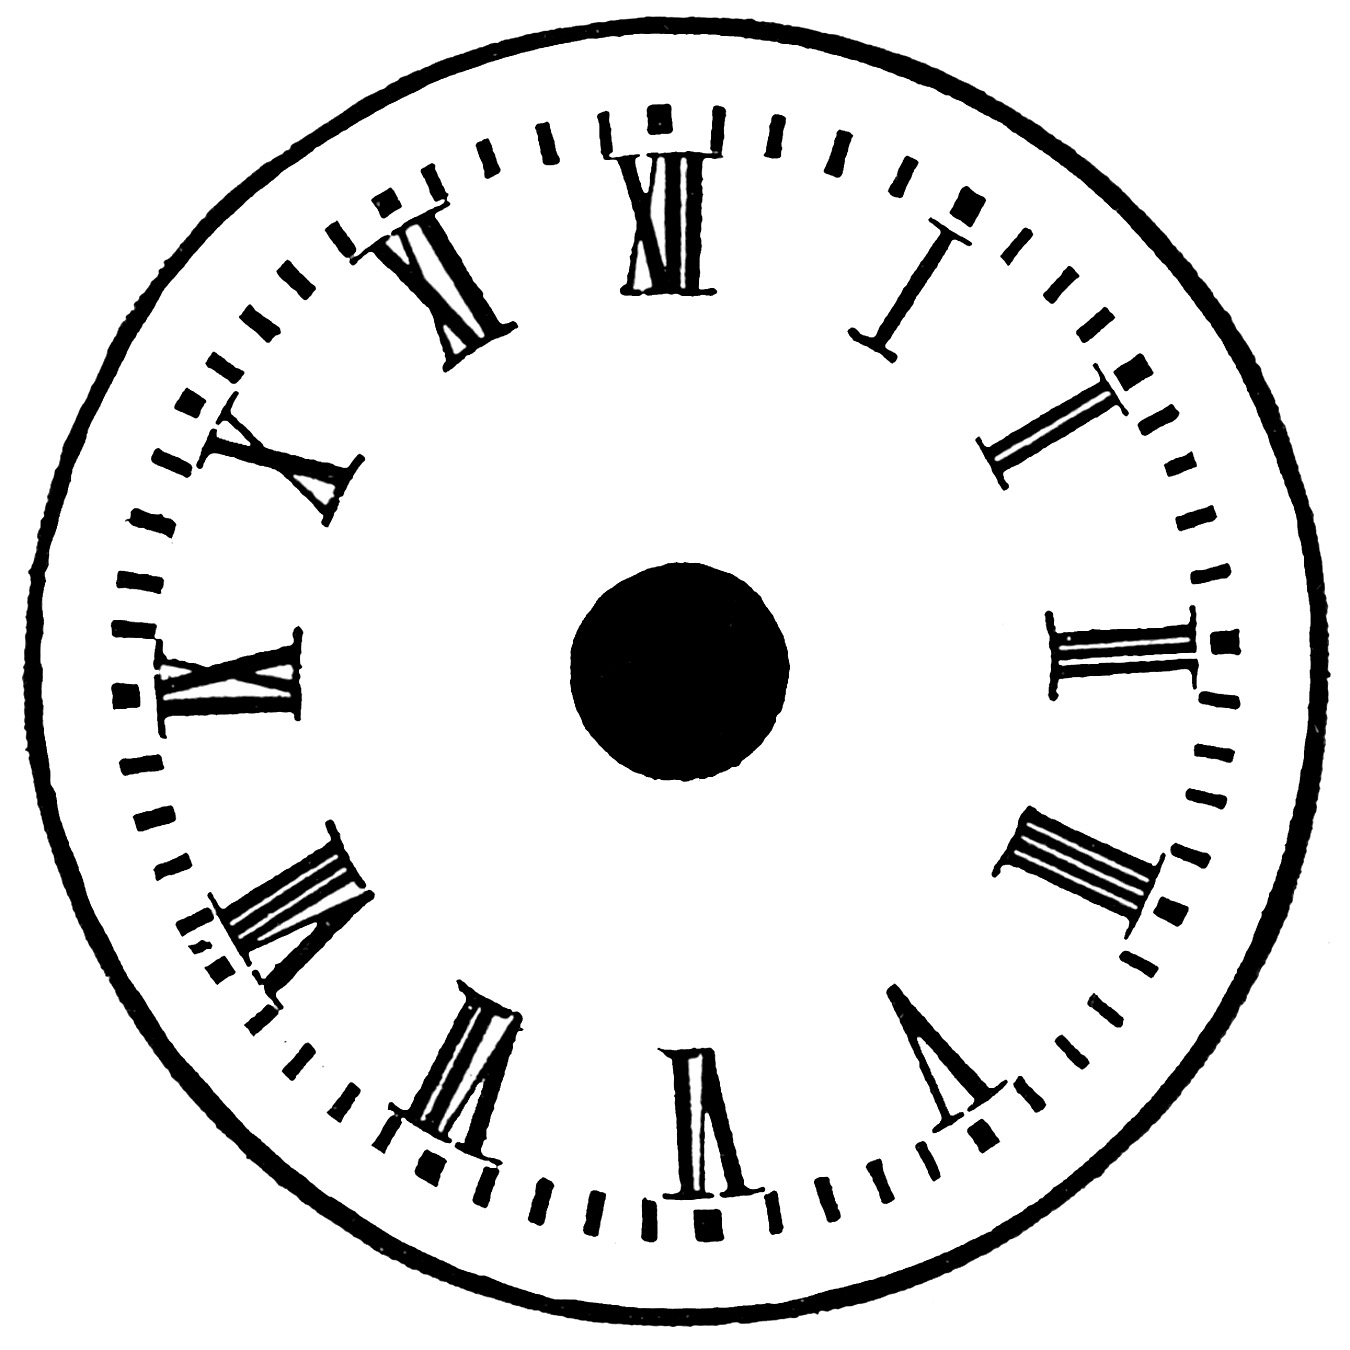 Clock Without Hand - ClipArt Best